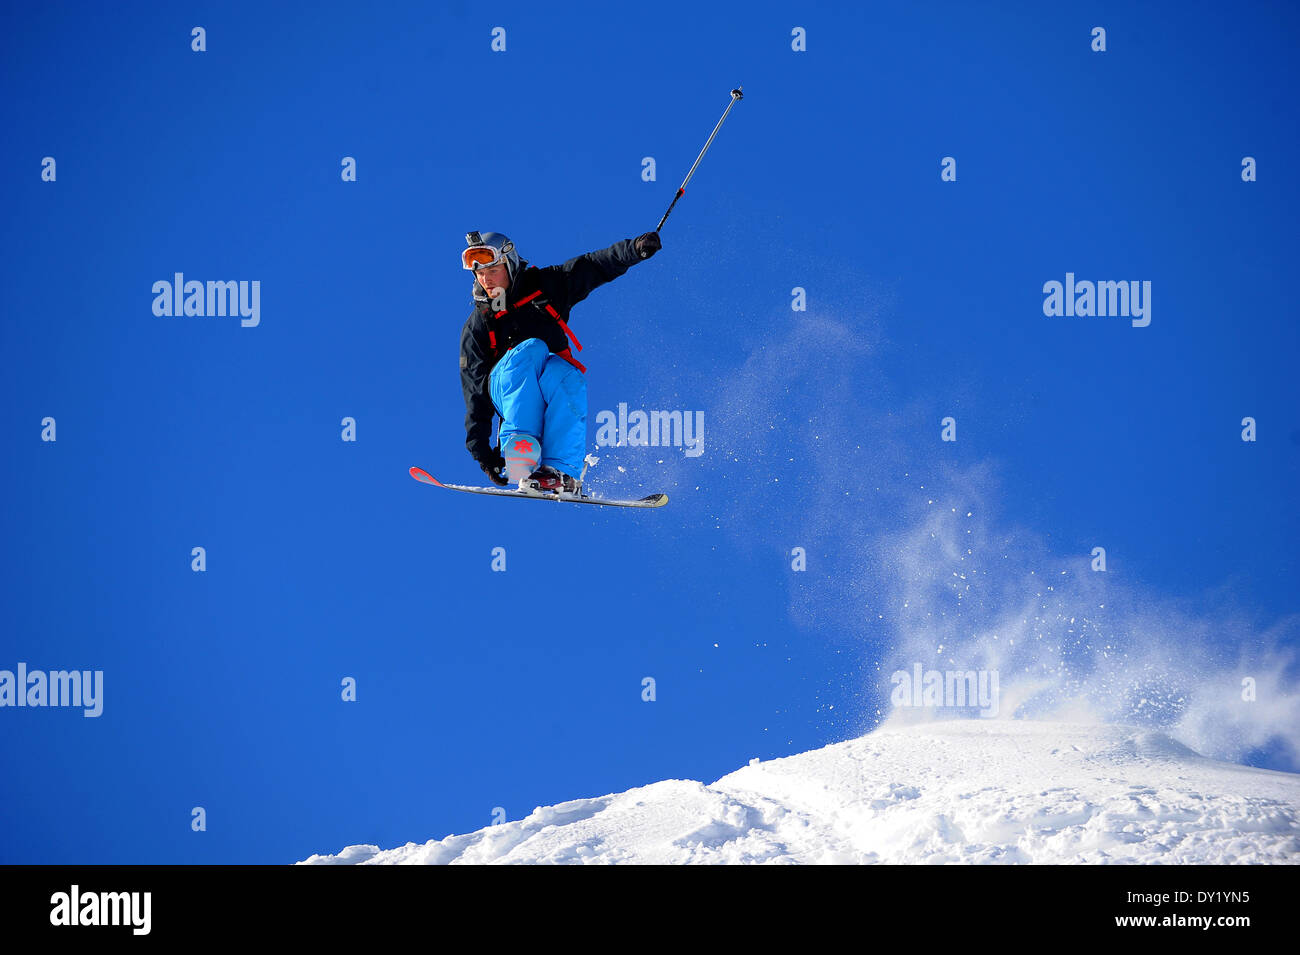 A skier performs a grab as he jumps off piste in the French ski resort of Courchevel. - Stock Image